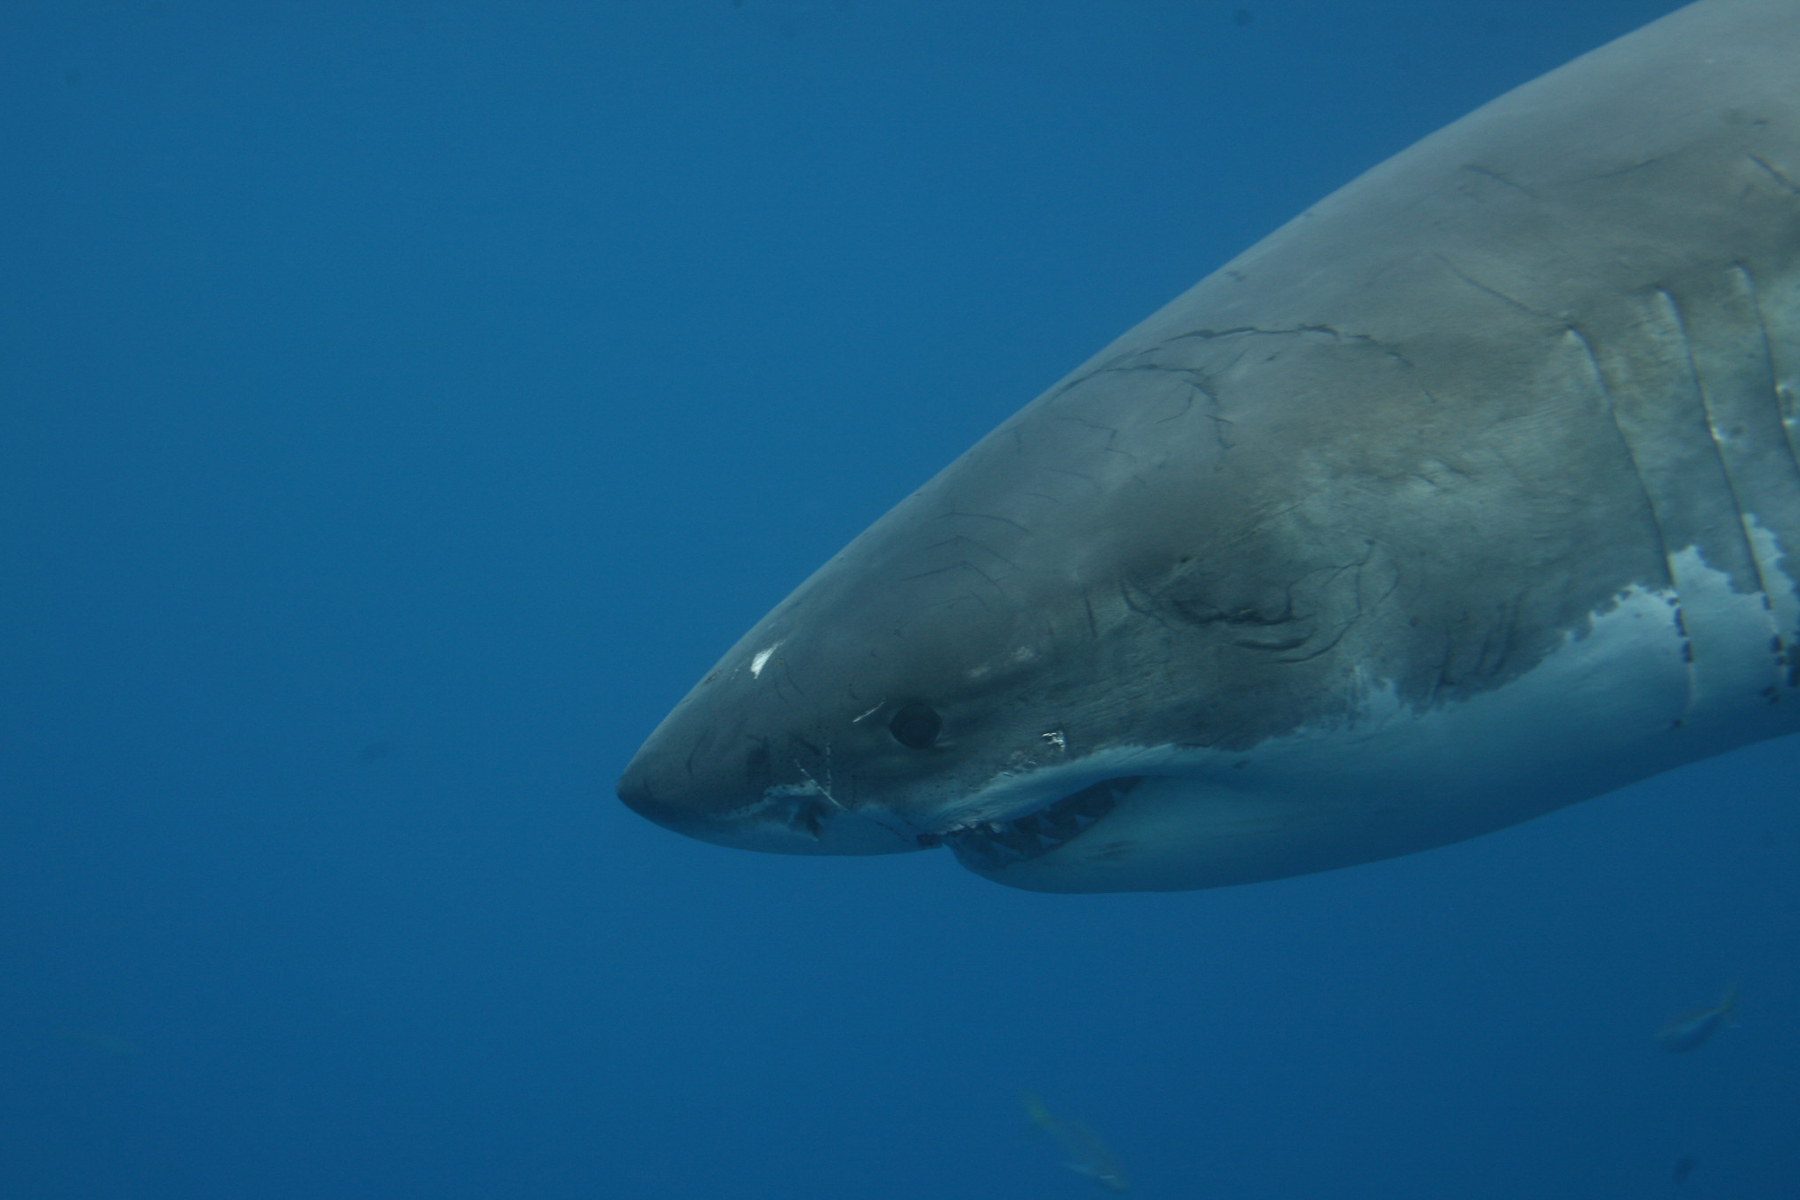 guadalupe island protecting sharks through ecotourism quest the shark slides effortlessly upwards the gunmetal back blending imperceptibly from the backdrop of the deep blue sea it isn t until the animal turns